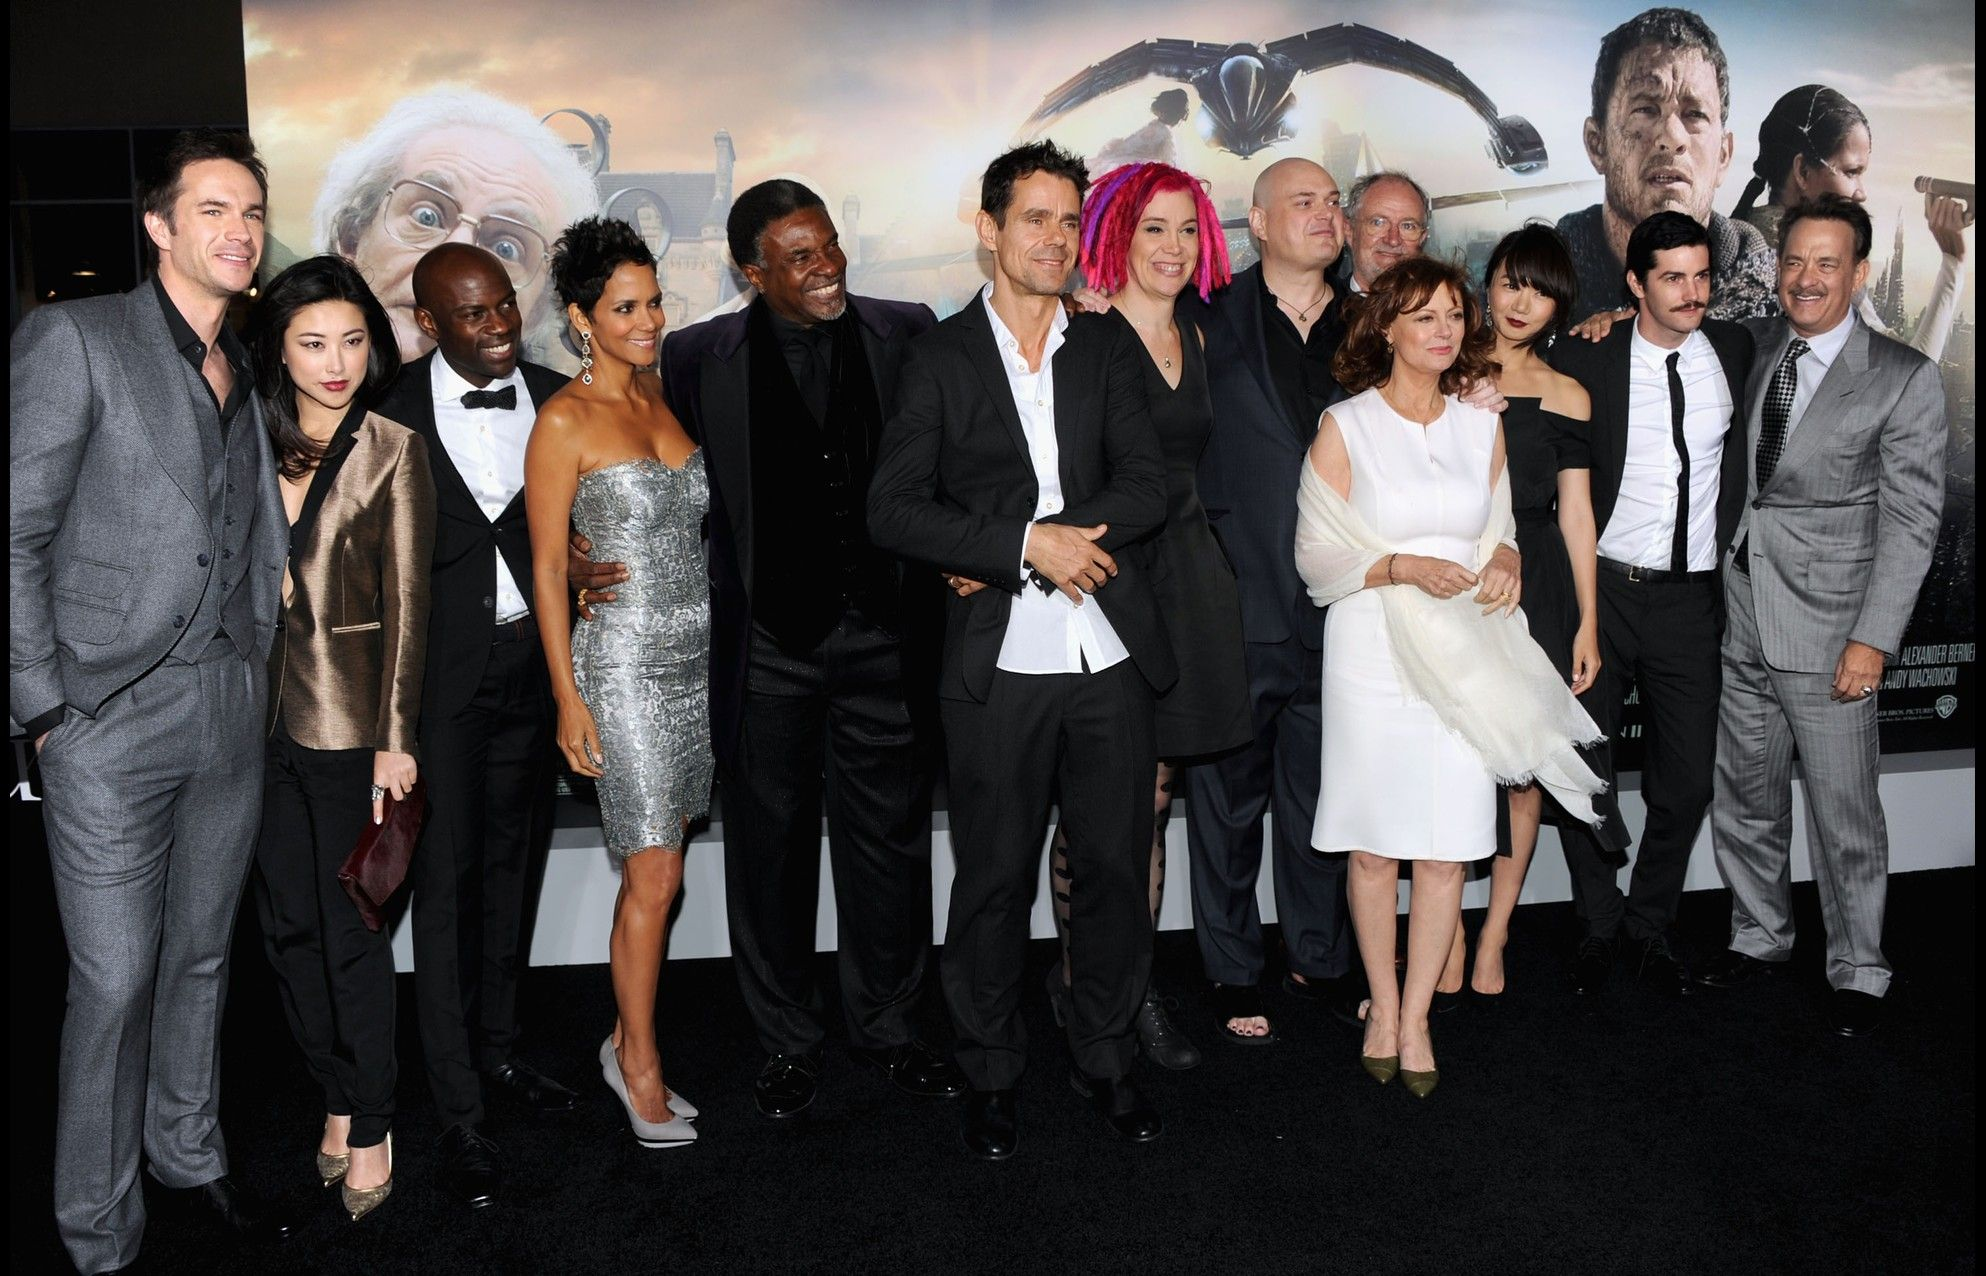 Cloud Atlas cast and directors at the Hollywood premiere at Grauman's Chinese Theatre - Oct. 24, 2012